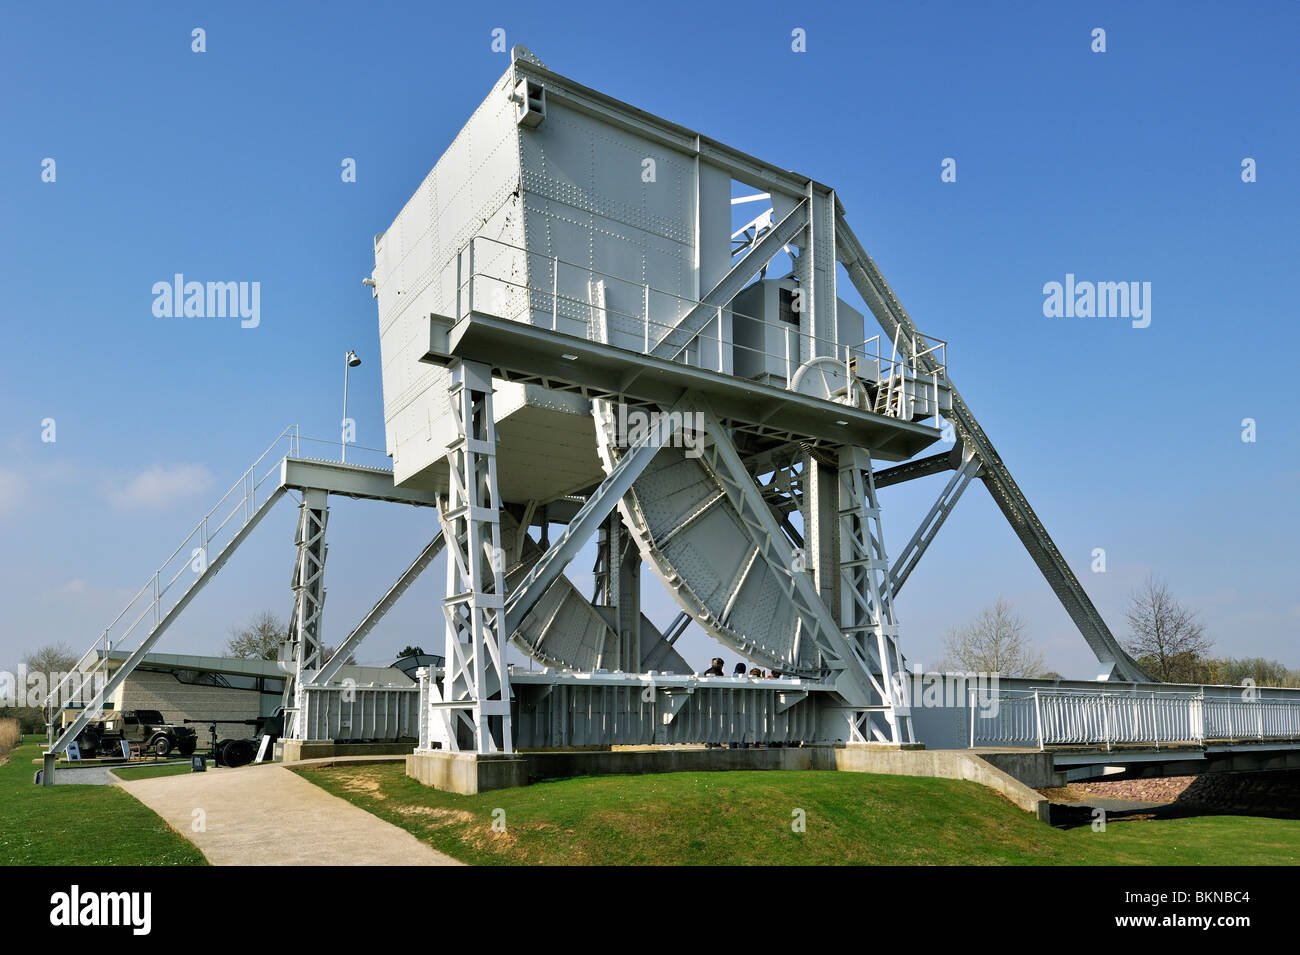 The original Bénouville Bridge at the WW2 Pegasus Museum near Ouistreham, Normandy, France - Stock Image